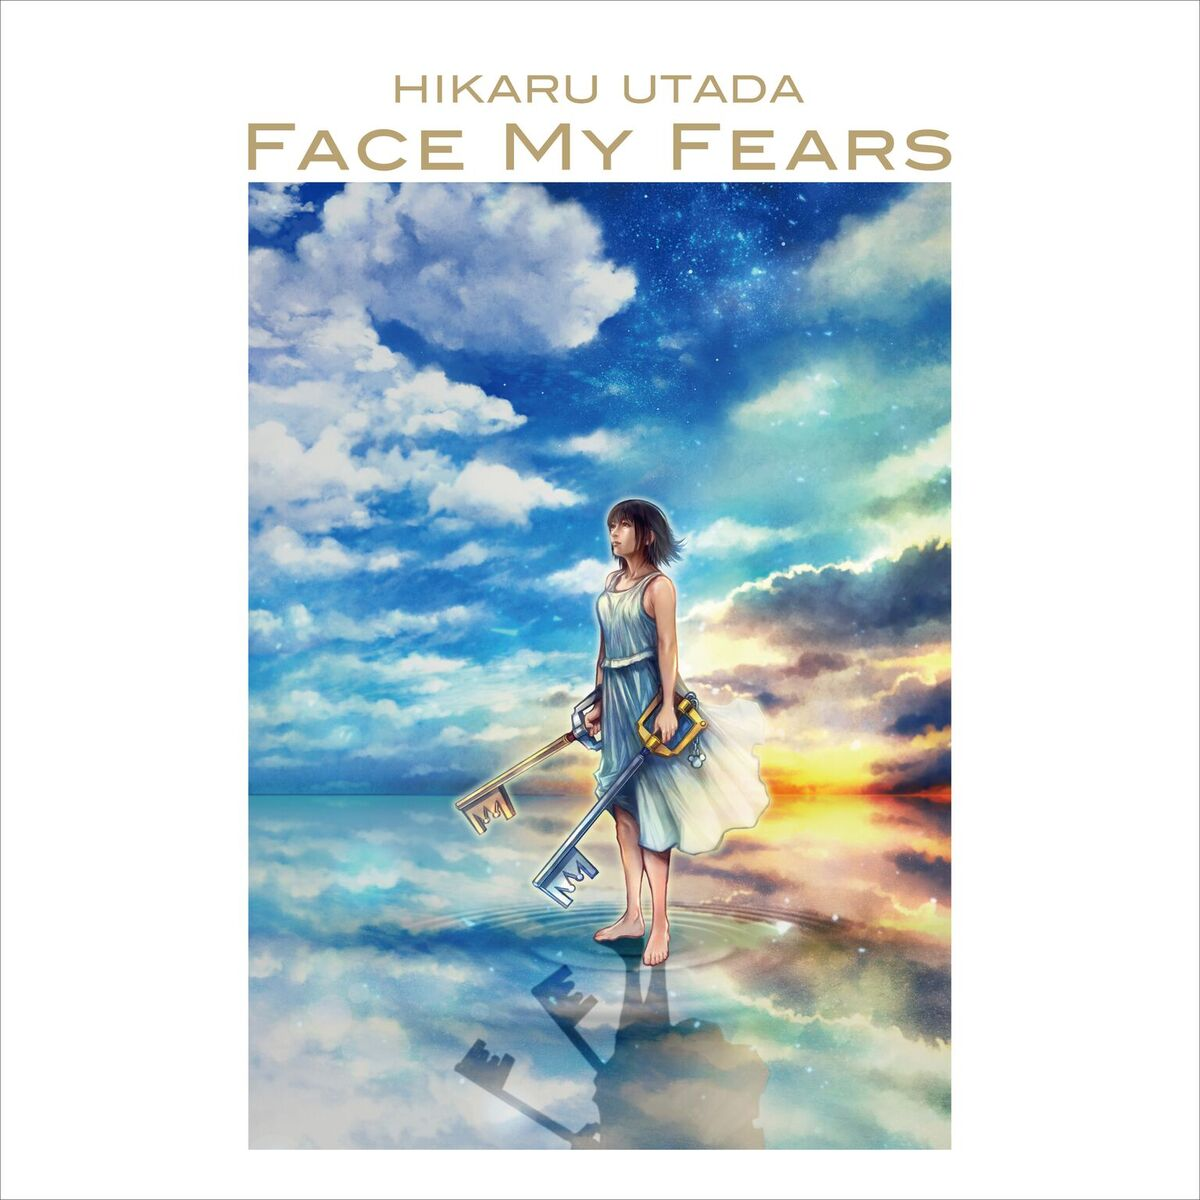 Hikaru Utada Photos, News and Videos